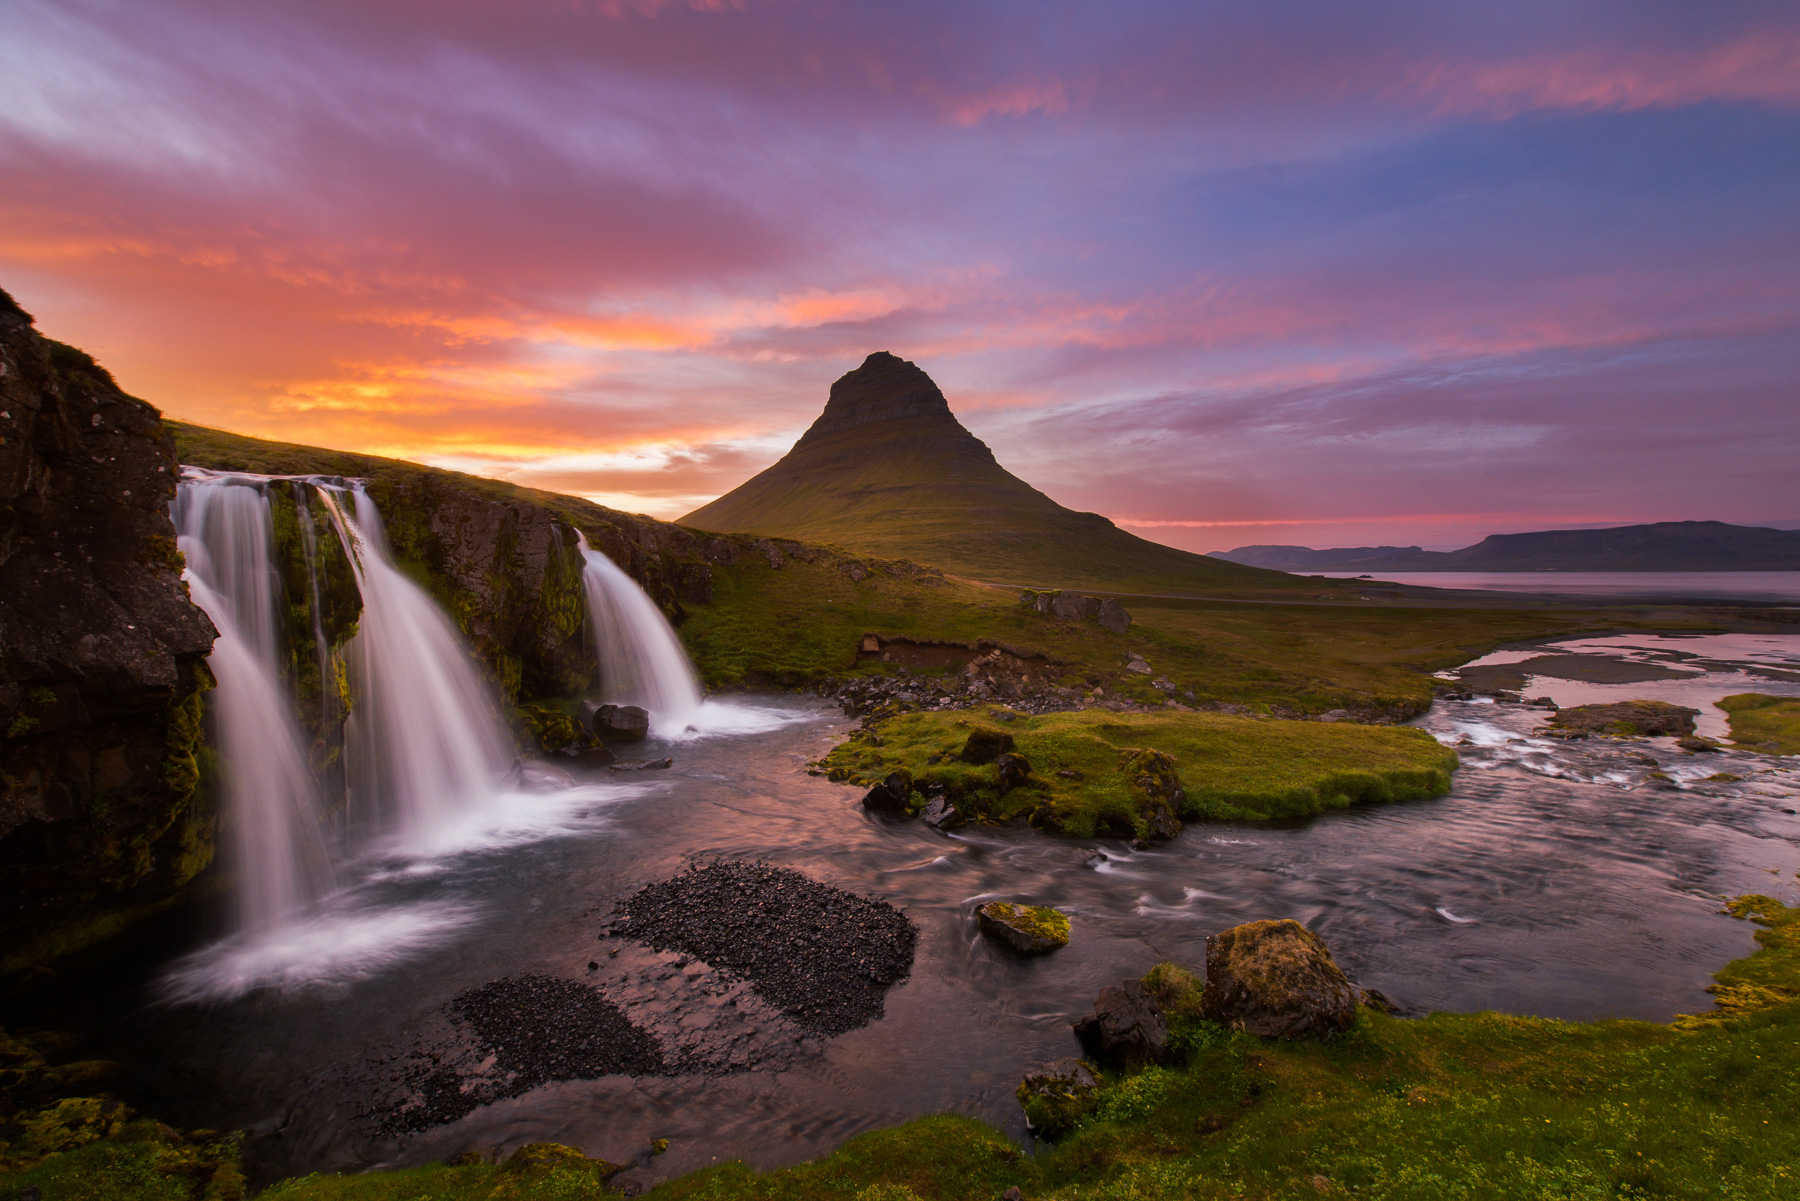 The skies above Kirkjufell (Church Mountain) erupted in a fiery display on this July evening in Iceland. Available Print Sizes...